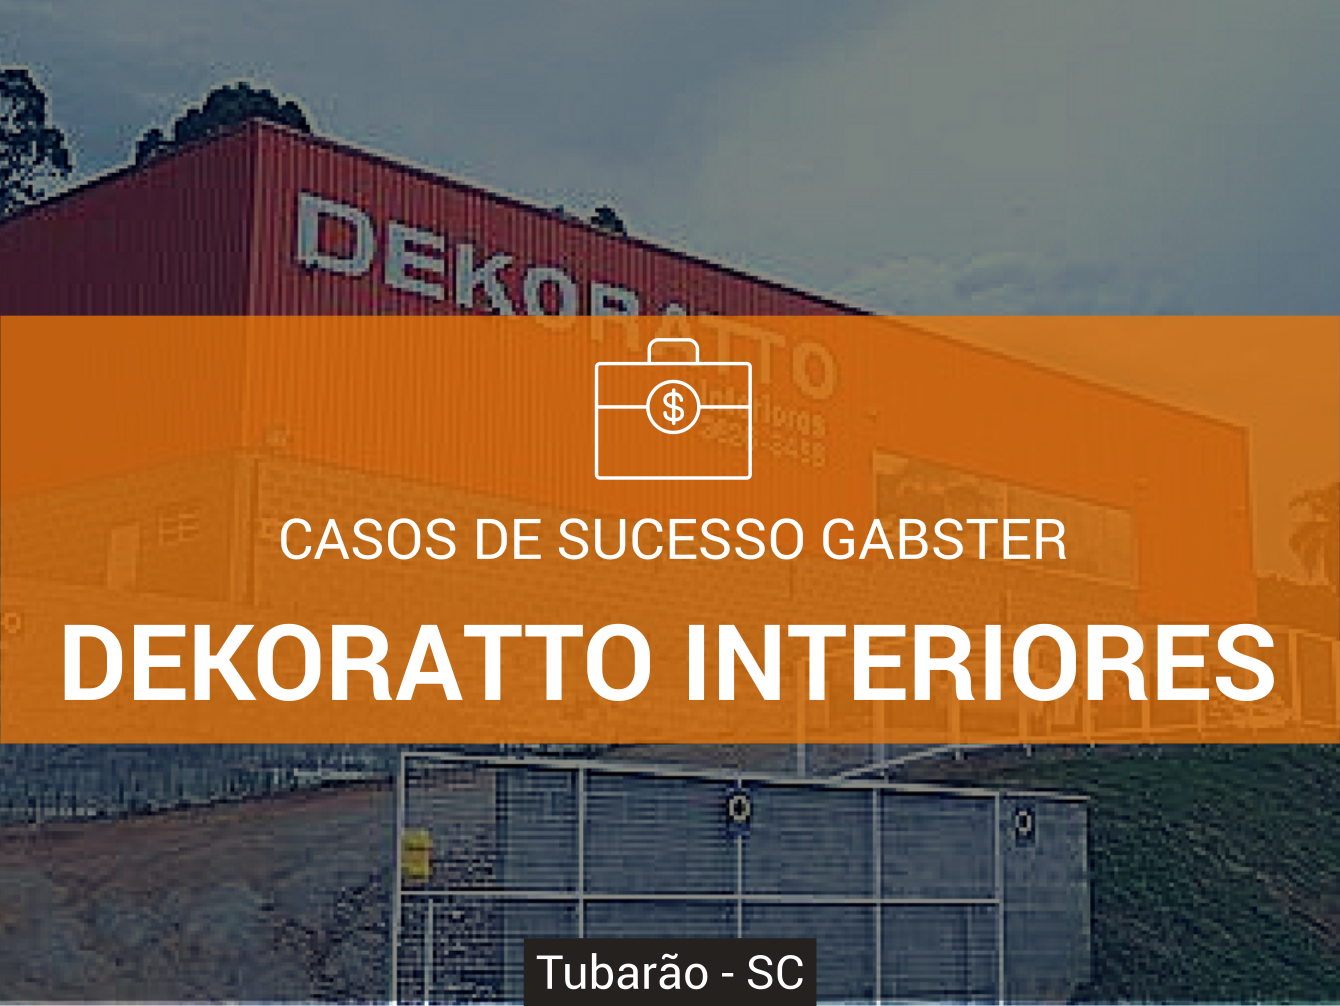 Case Dekoratto Interiores